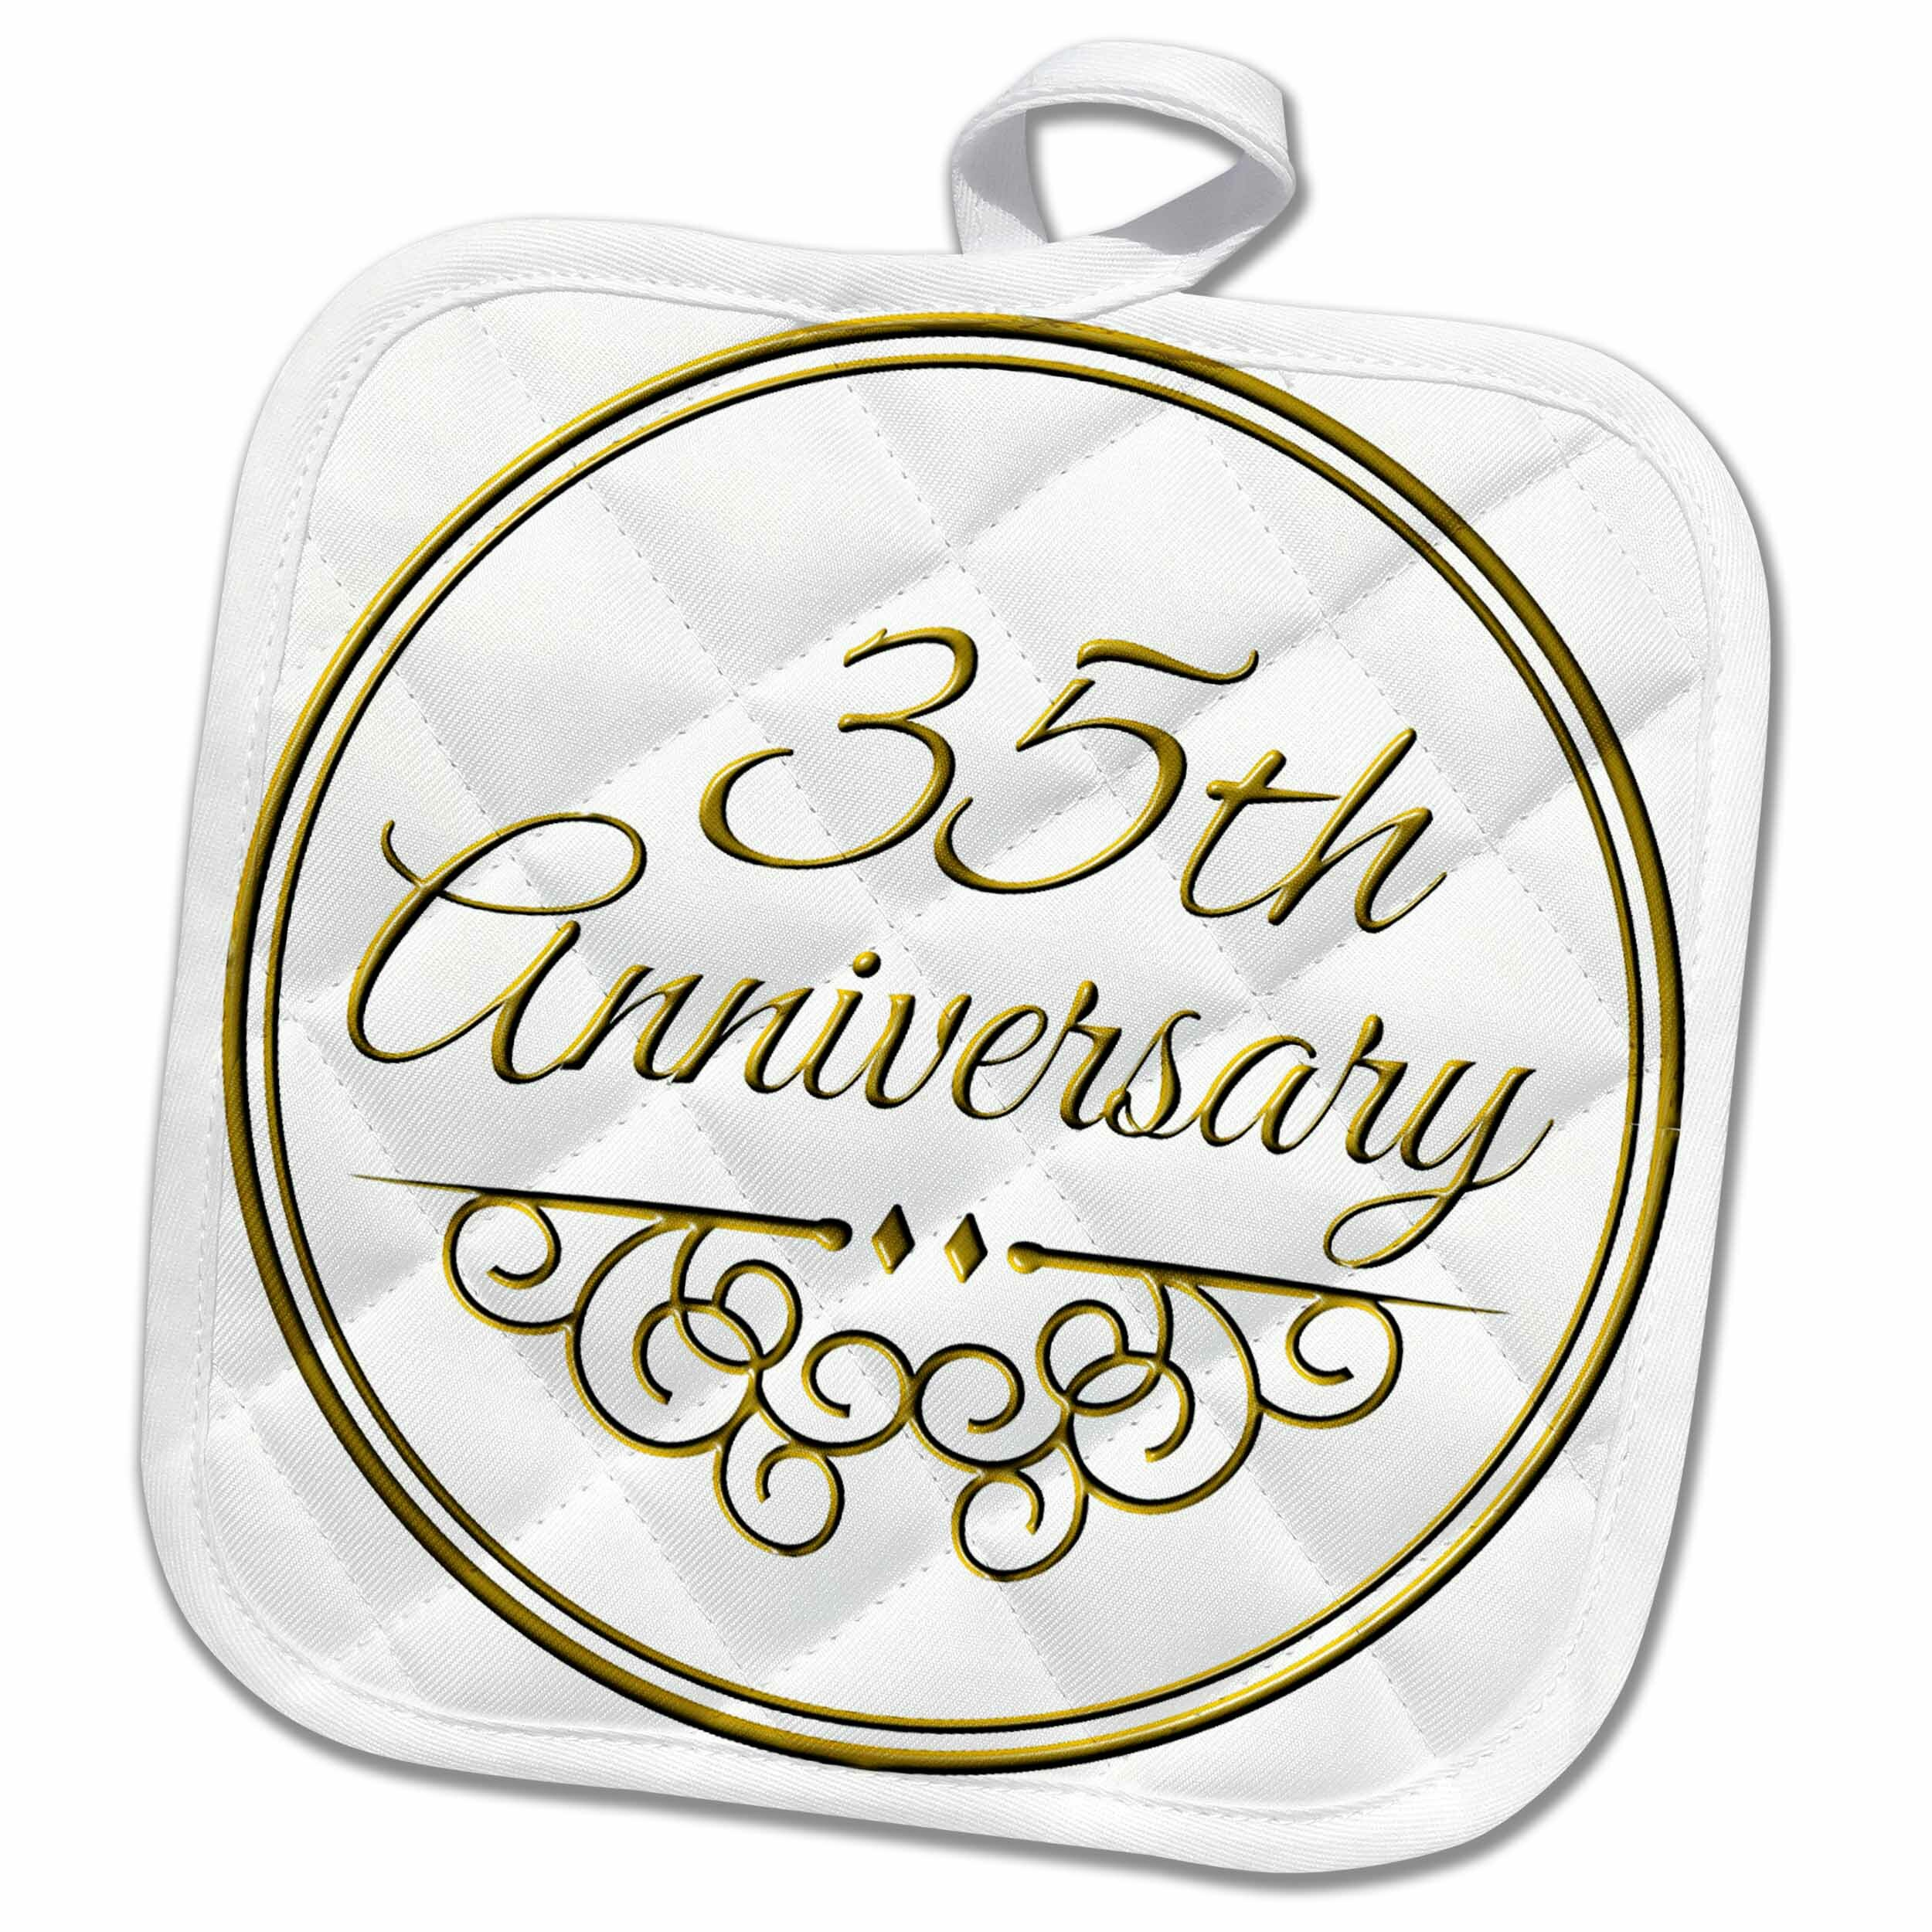 3dRose 35th Anniversary Gift Text for Celebrating Wedding Anniversaries 35 Years Married Together Pot Holder | Wayfair